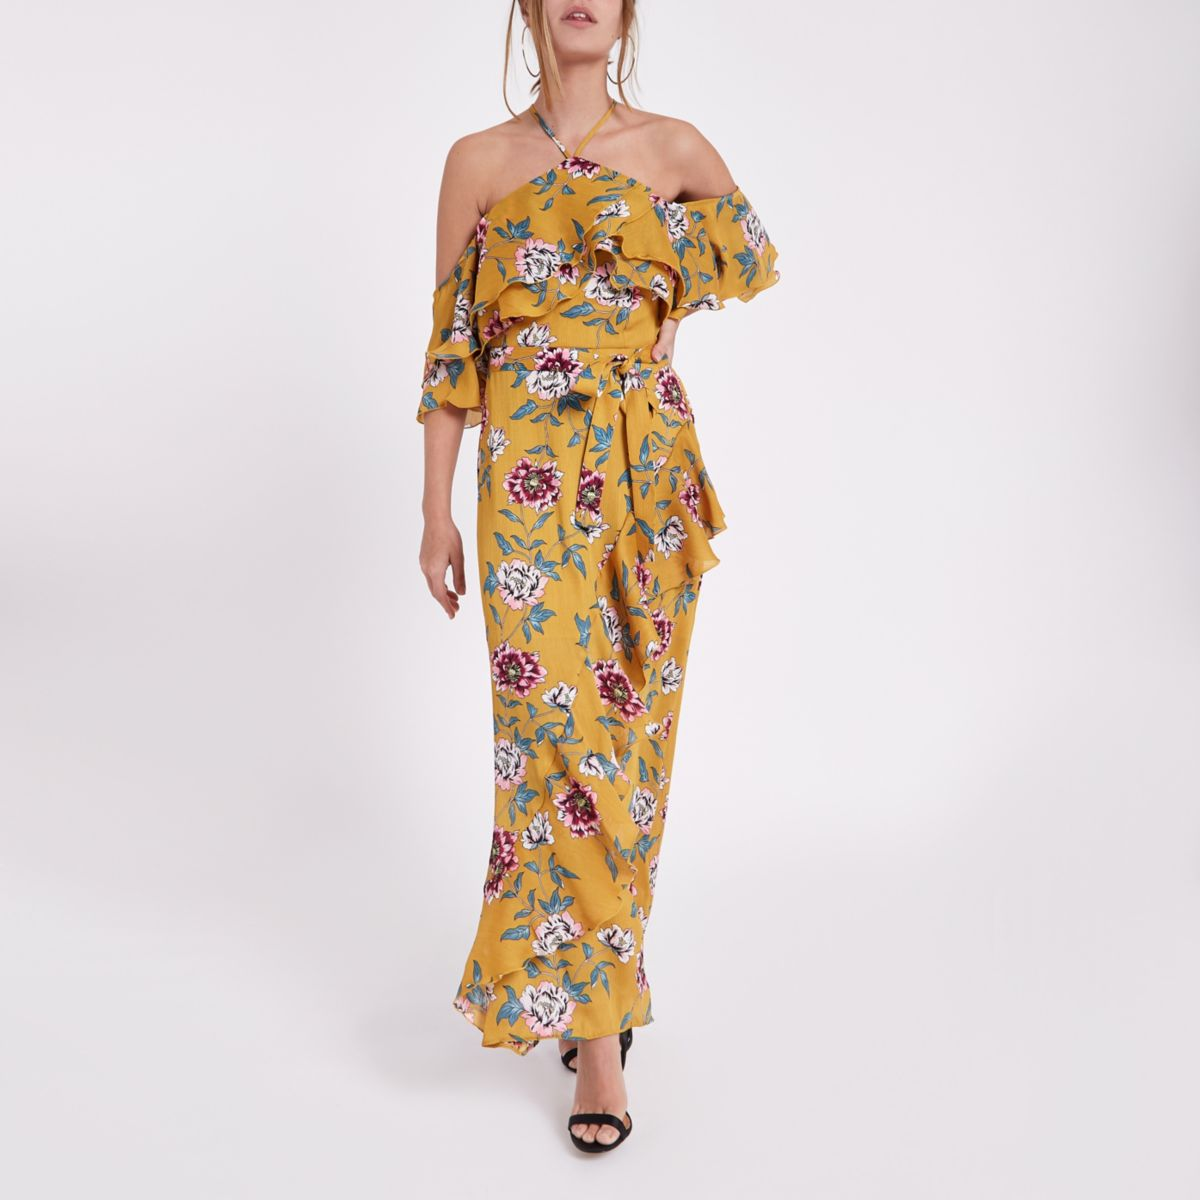 Petite yellow floral cold shoulder maxi dress